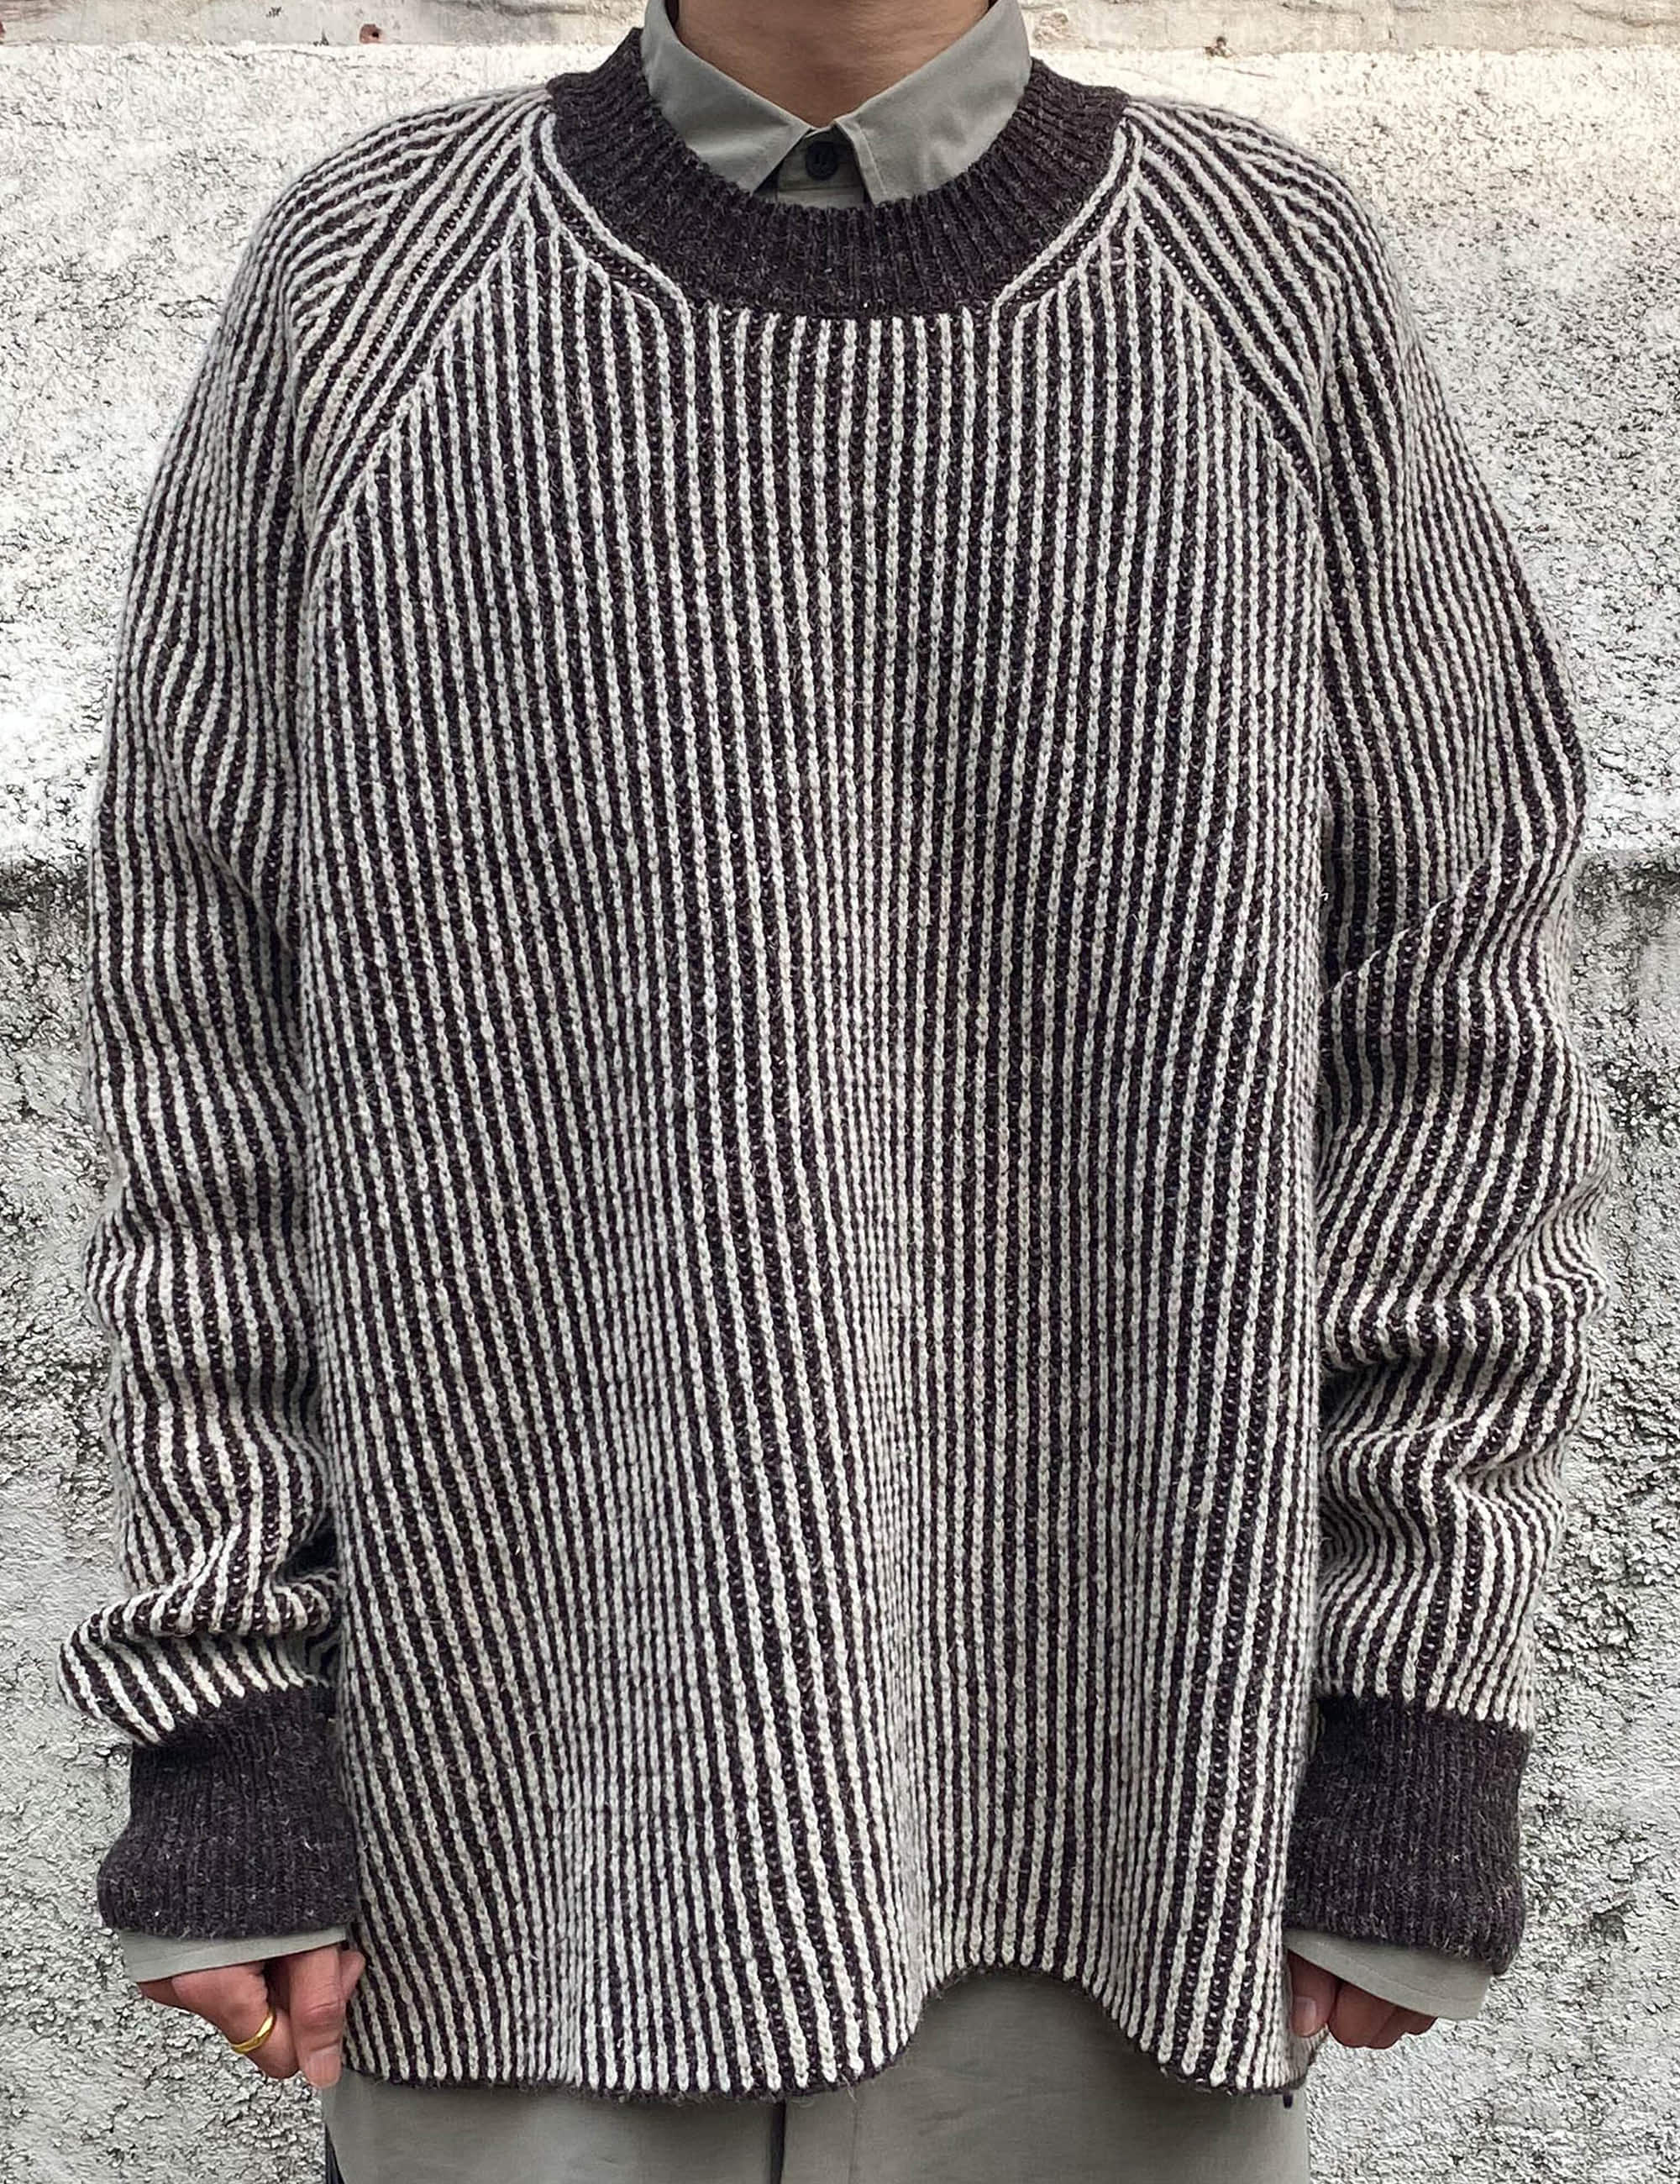 KNIT_NATURAL/DARK BROWN STRIPED MERICHAN